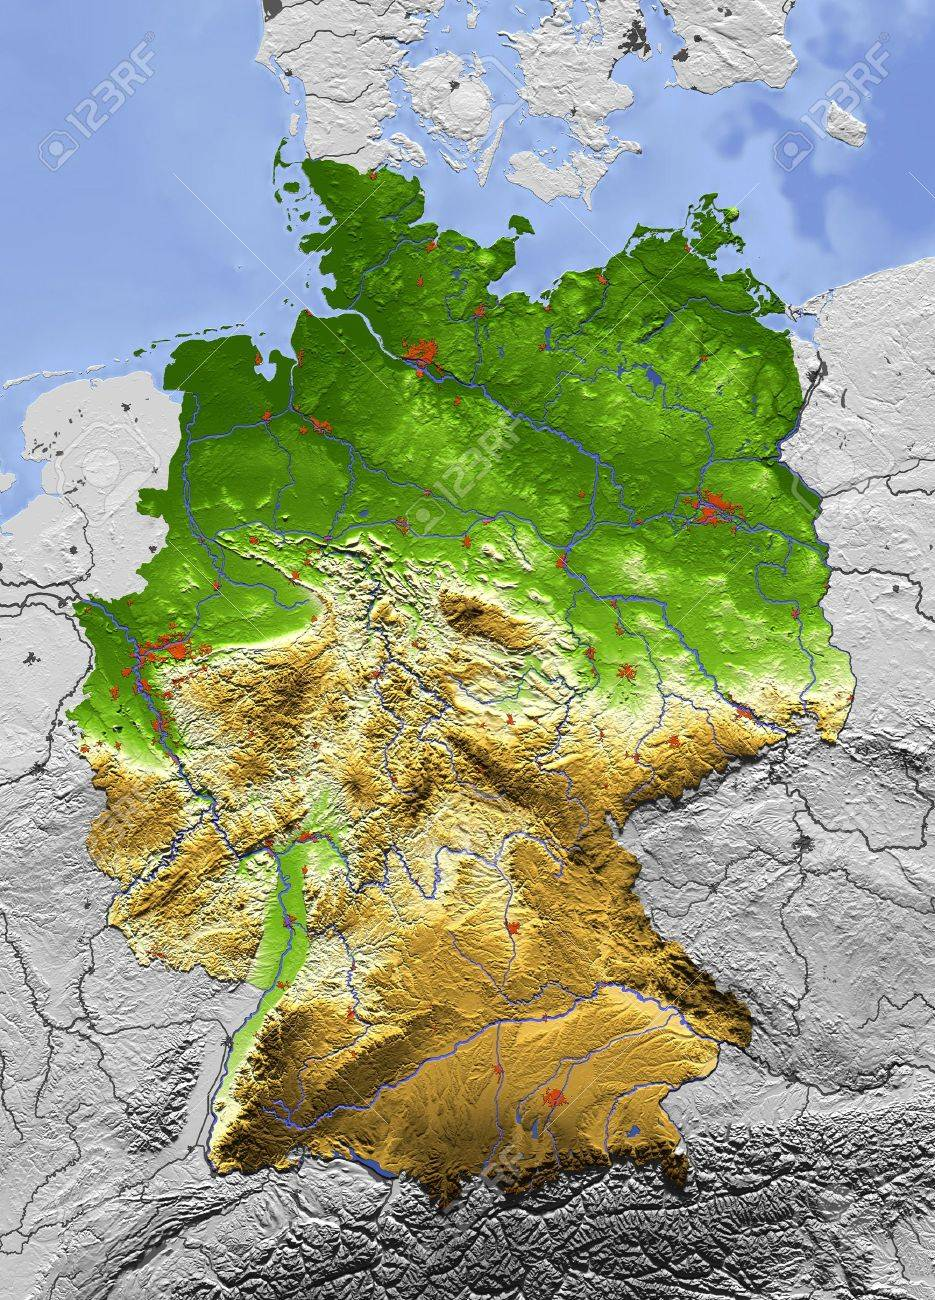 3D Relief Map Of Germany, Seen From Above. Shows Major Cities ...